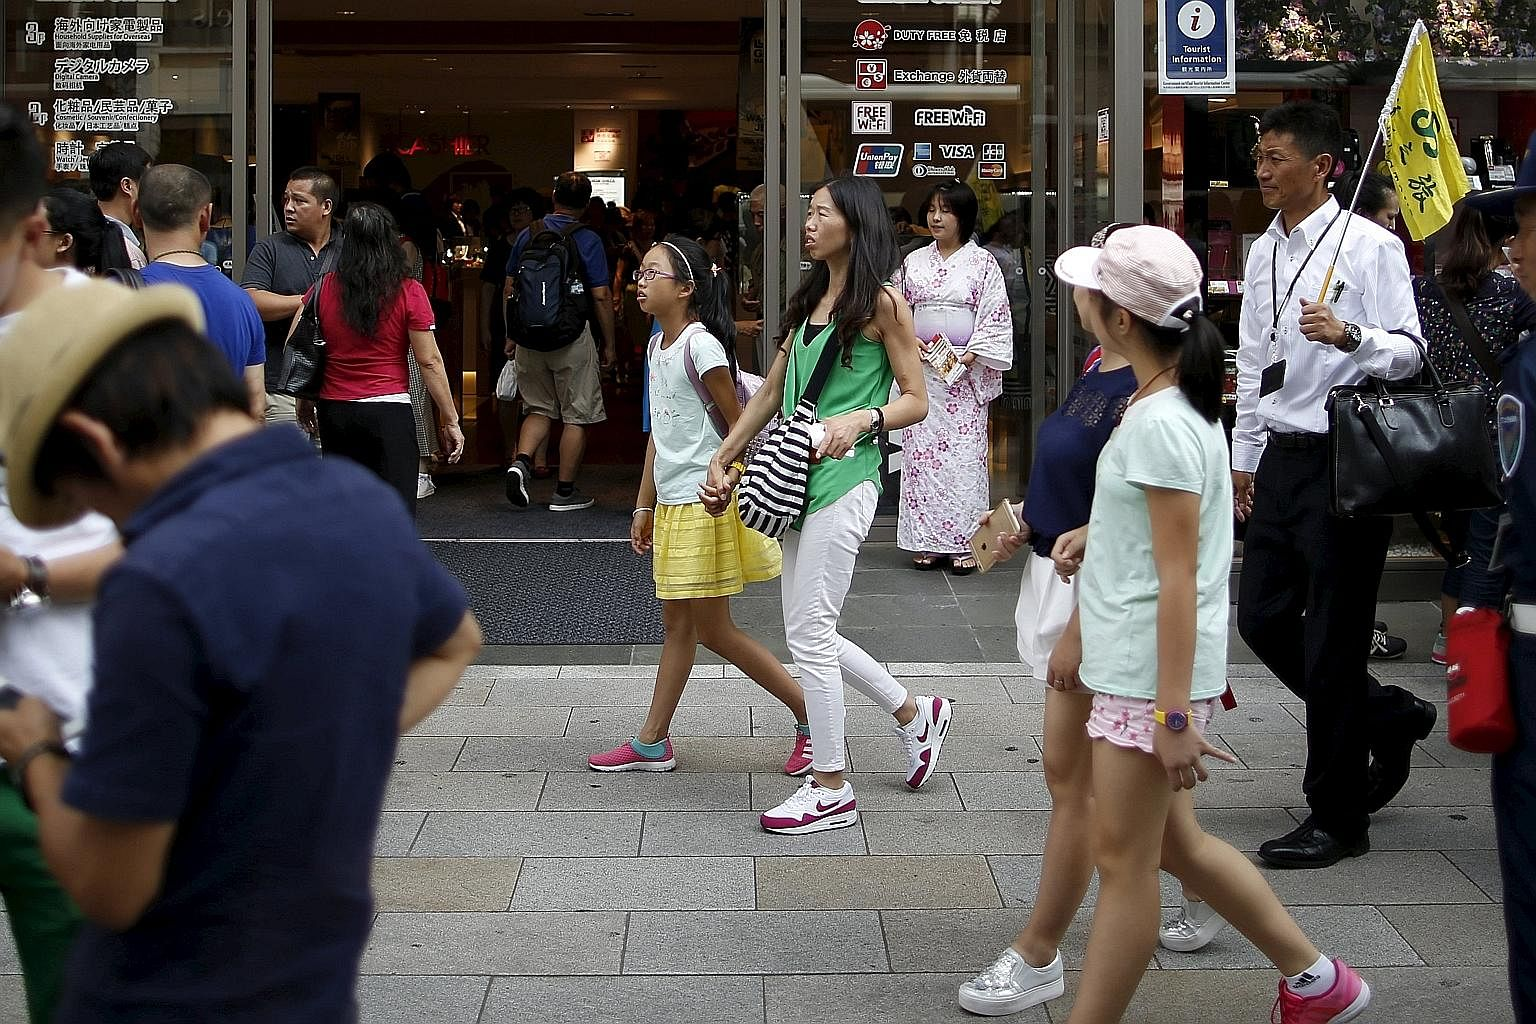 Chinese tourists in Tokyo's Ginza shopping and amusement district last month. Japan is among the most popular destinations for travellers from China. July and August are traditionally the peak summer vacation months.